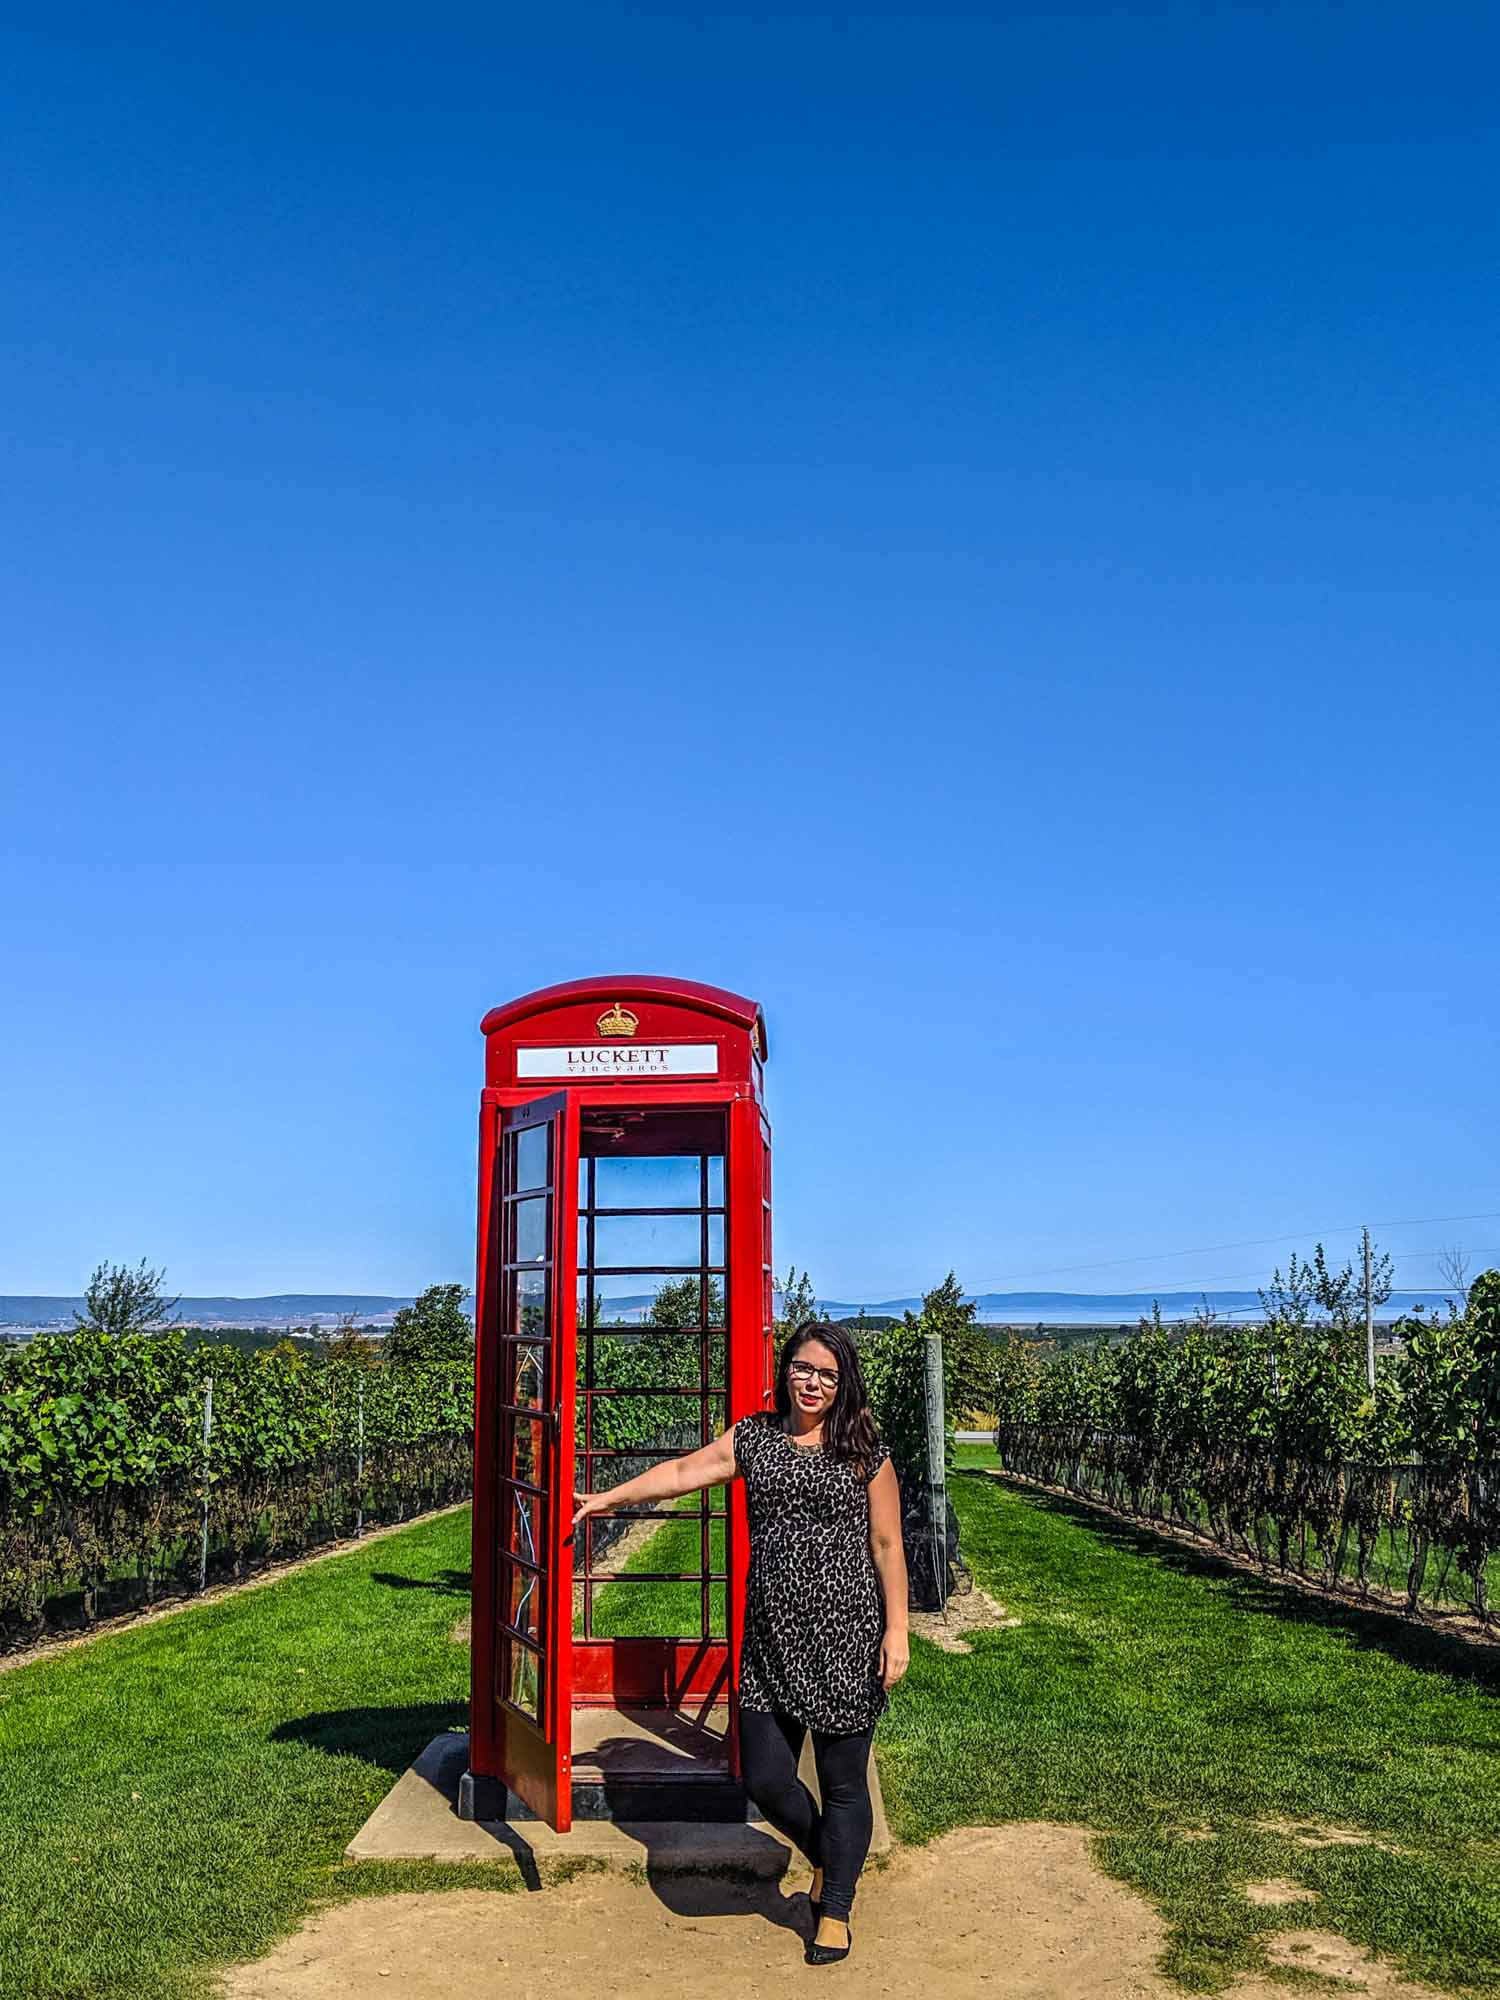 Red British phone booth at Luckett Vineyards, one of the stops on the Magic Winery Bus in Nova Scotia.